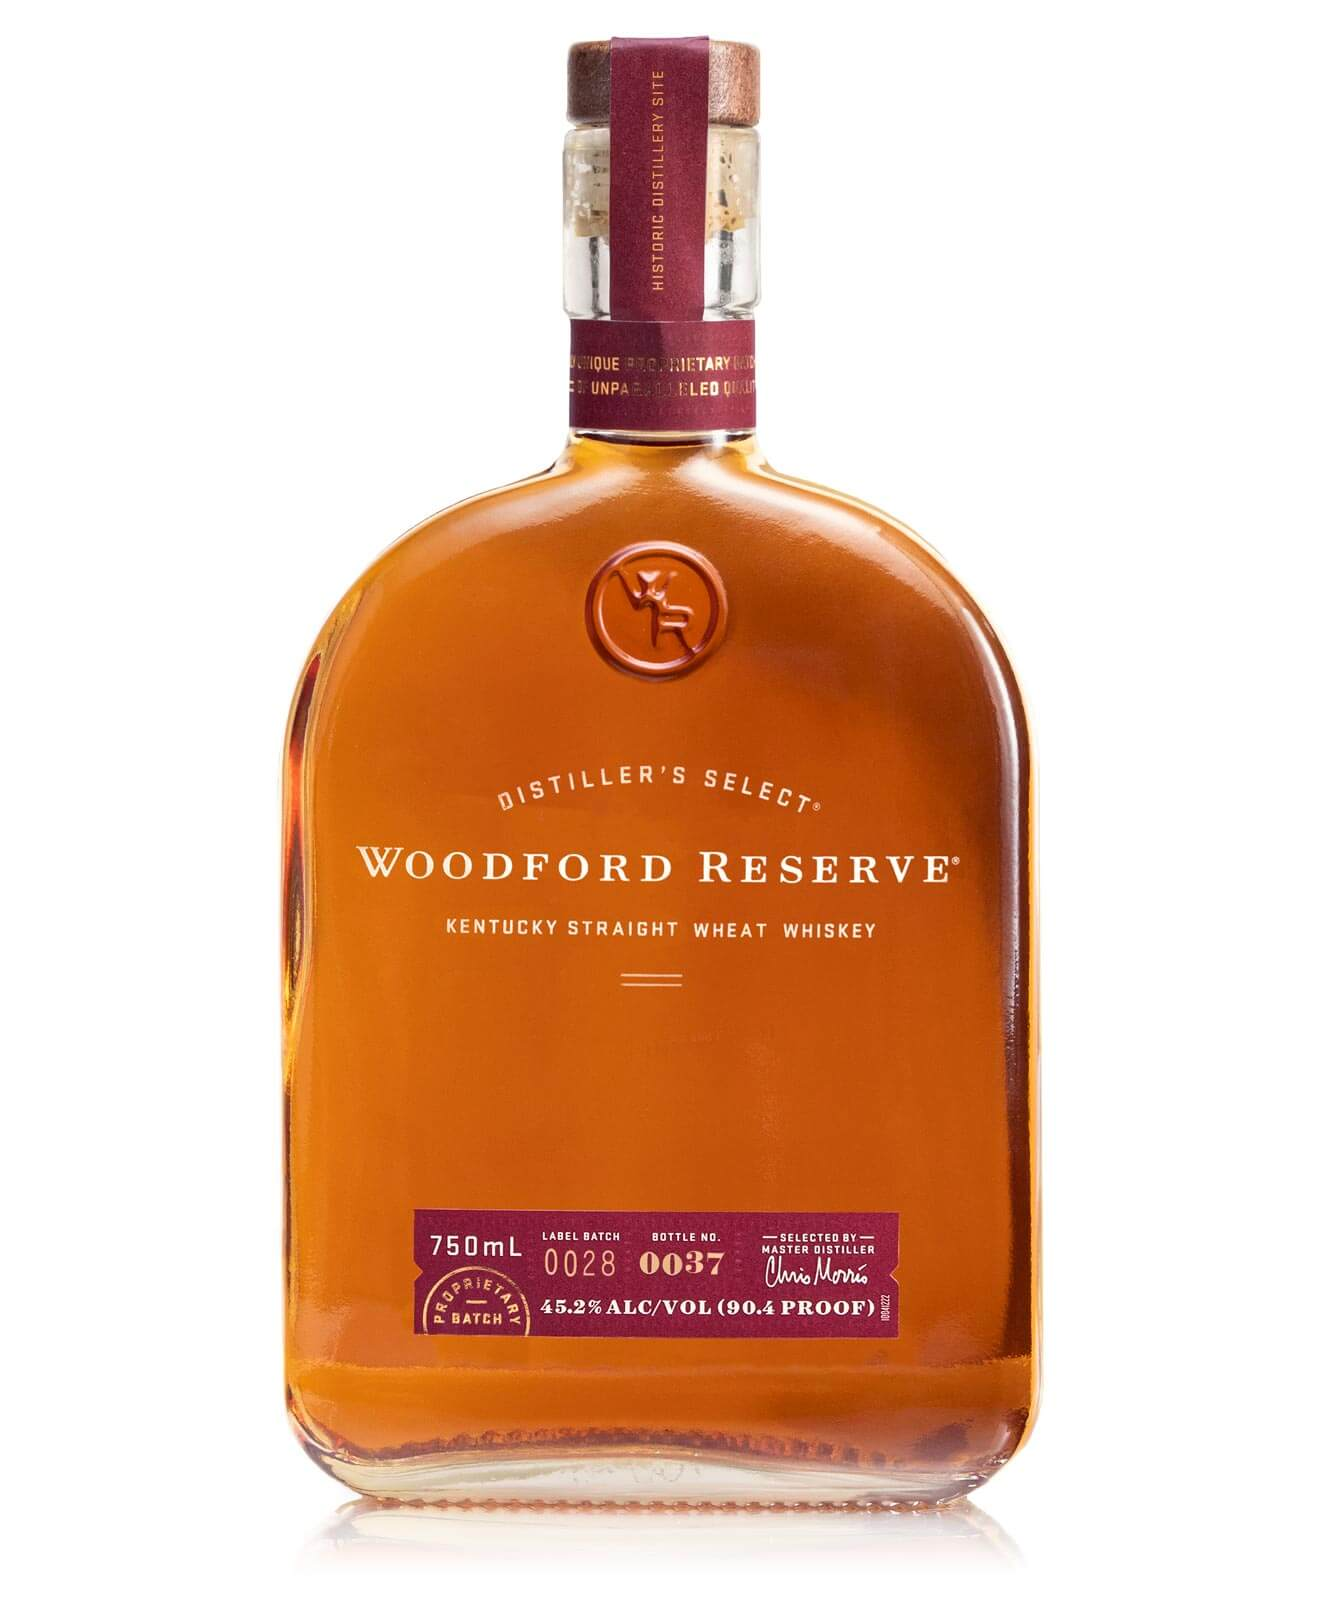 Woodford Reserve Kentucky Straight Wheat Whiskey